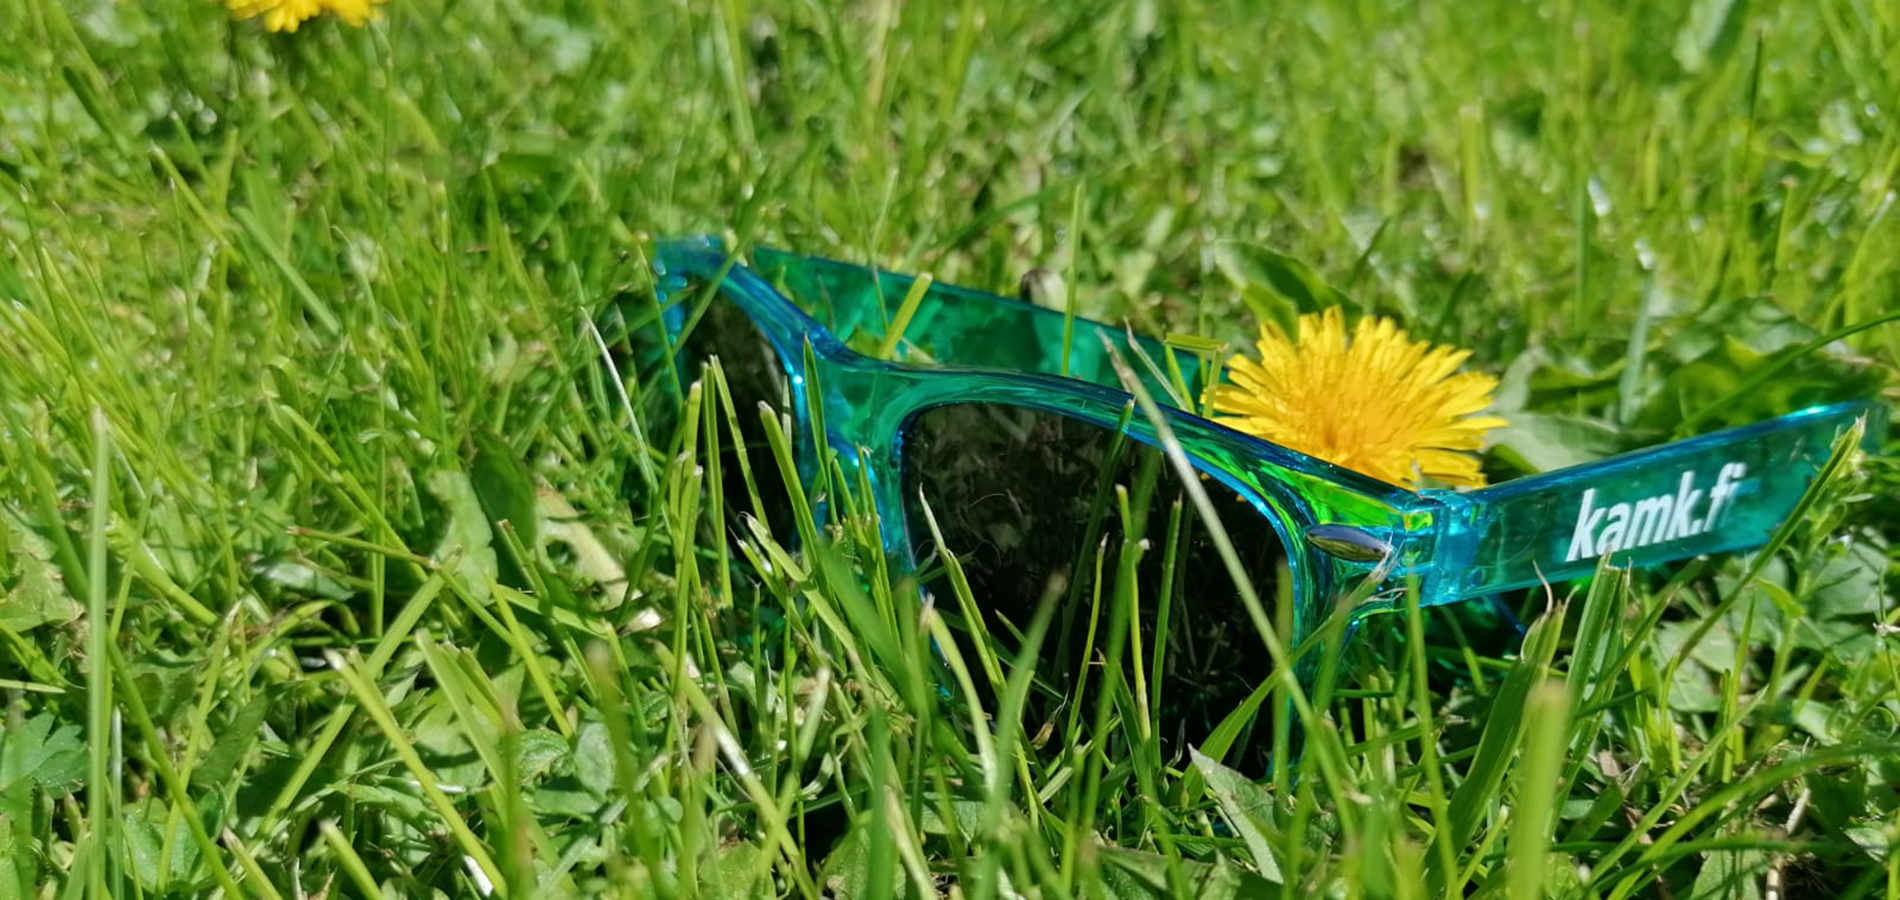 Picture of sunglasses on the grass.